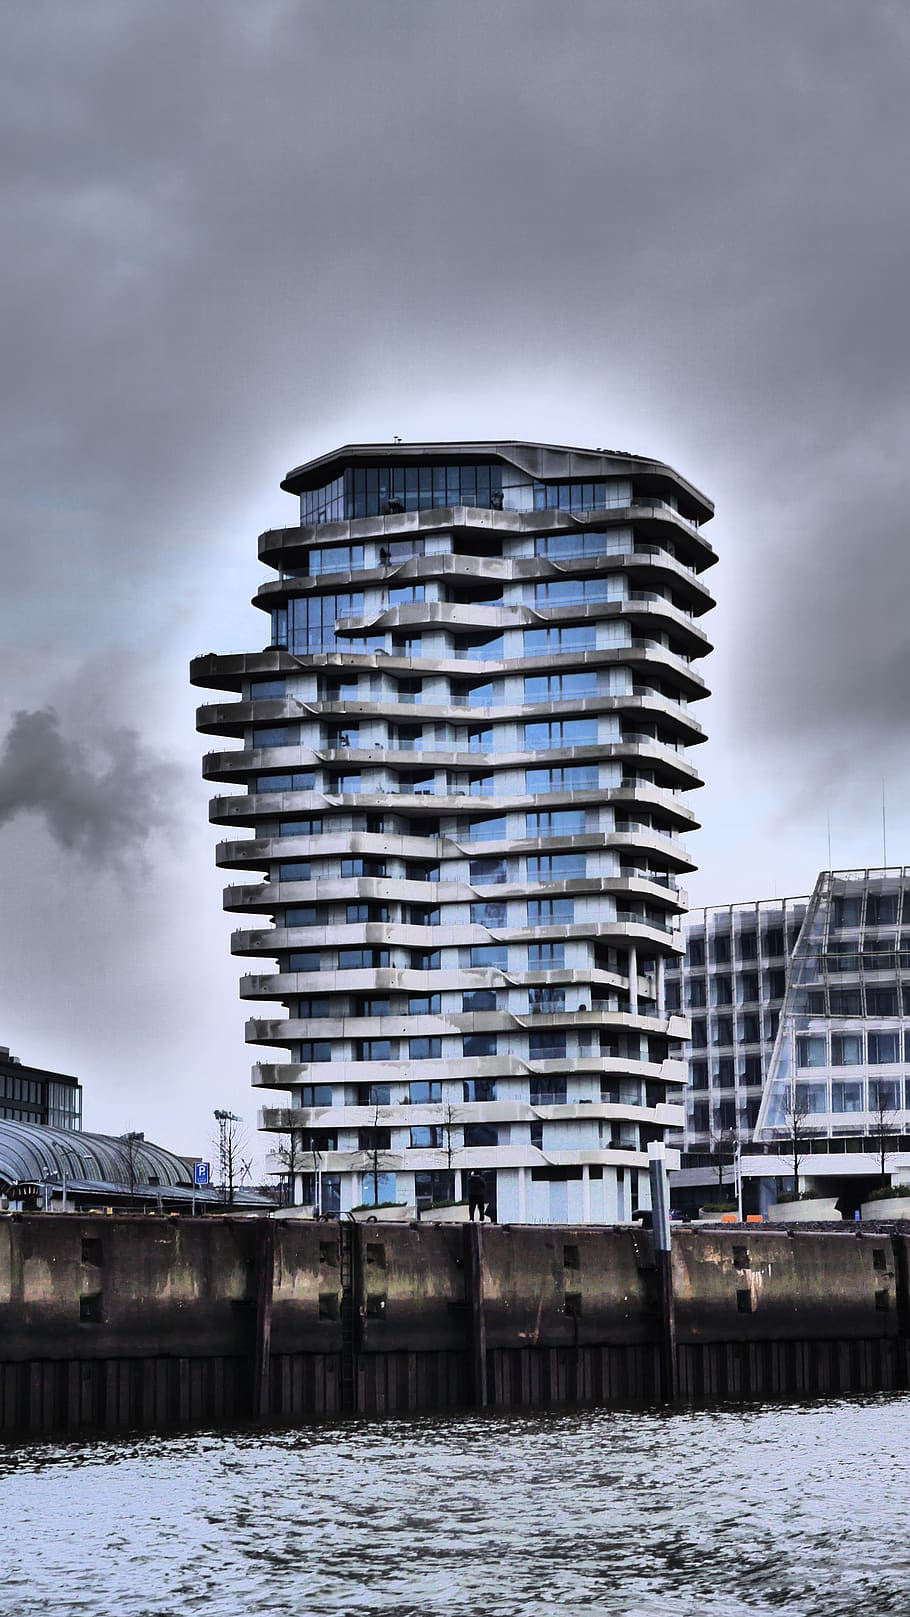 Marco Polo Tower Harbour City, Hamburg, Hanseatic City, Marco-polo-tower, Architecture, Water, Building Exterior, Built Structure, Sky, Cloud - Sky | Pxfuel